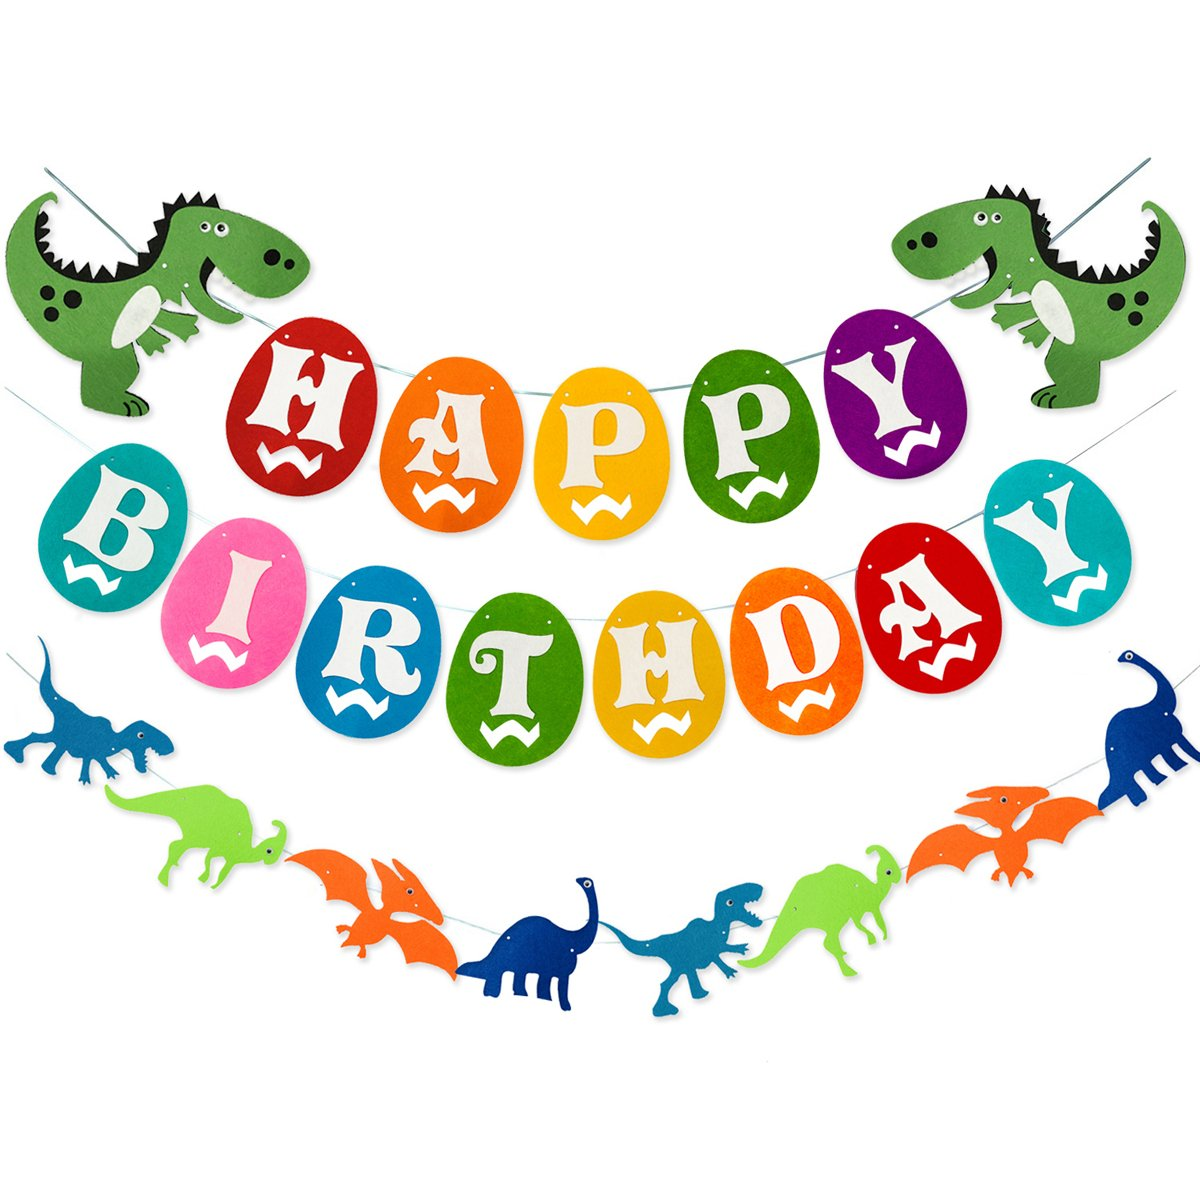 Dinosaur Happy Birthday Banner, Colorful Felt Garland Flag for Dino Jungle Jurassic First Birthday Dinosaur Party Supplies Decorations by Haptda